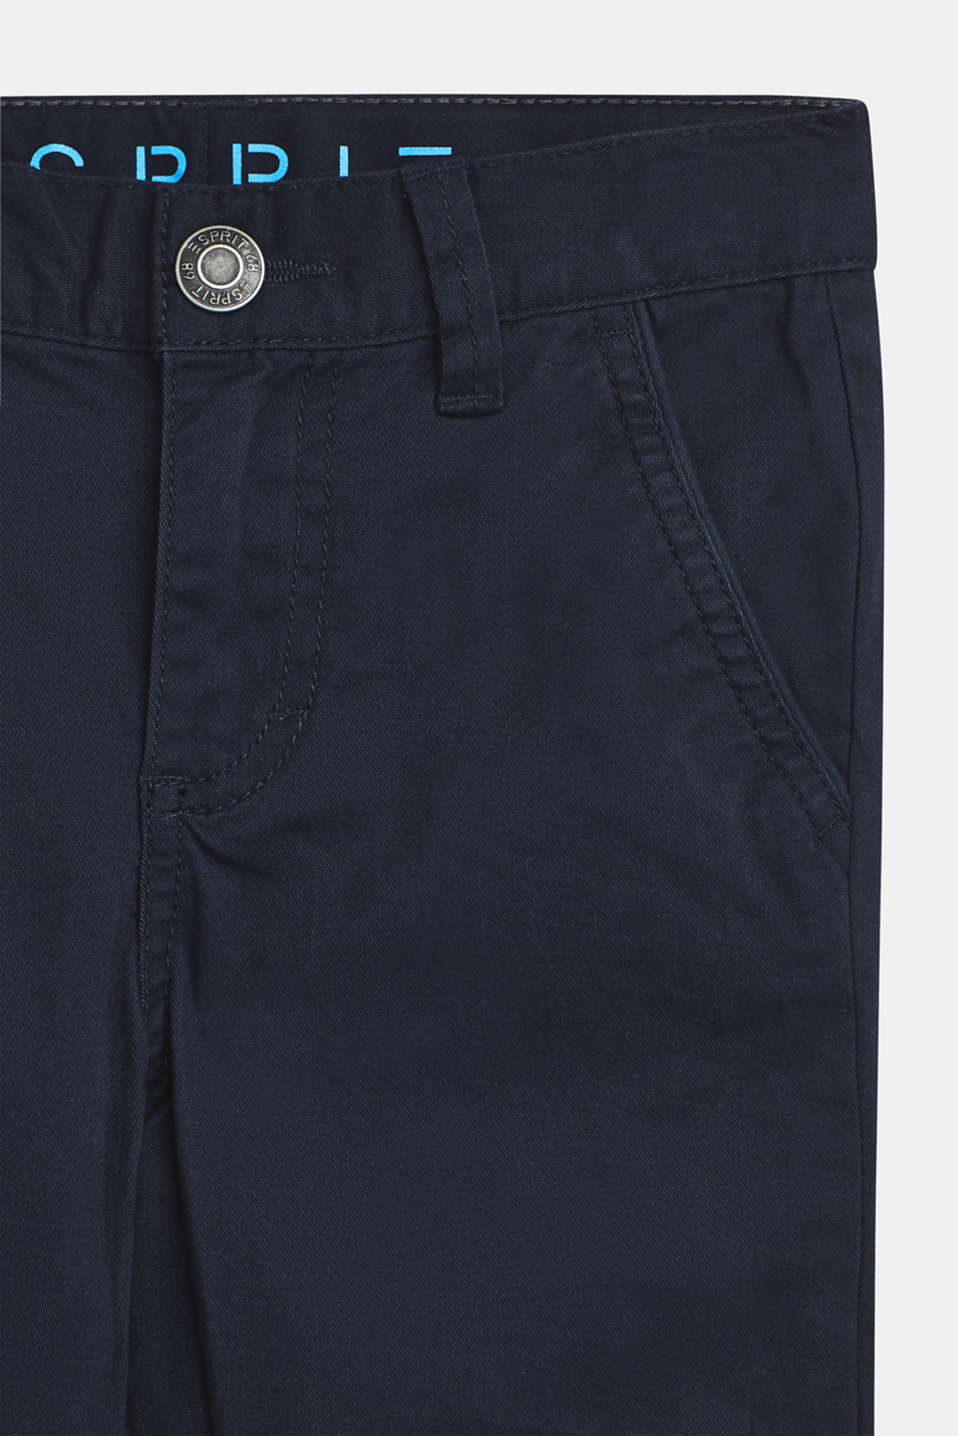 Stretch cotton trousers with an adjustable waistband, NAVY BLUE, detail image number 1